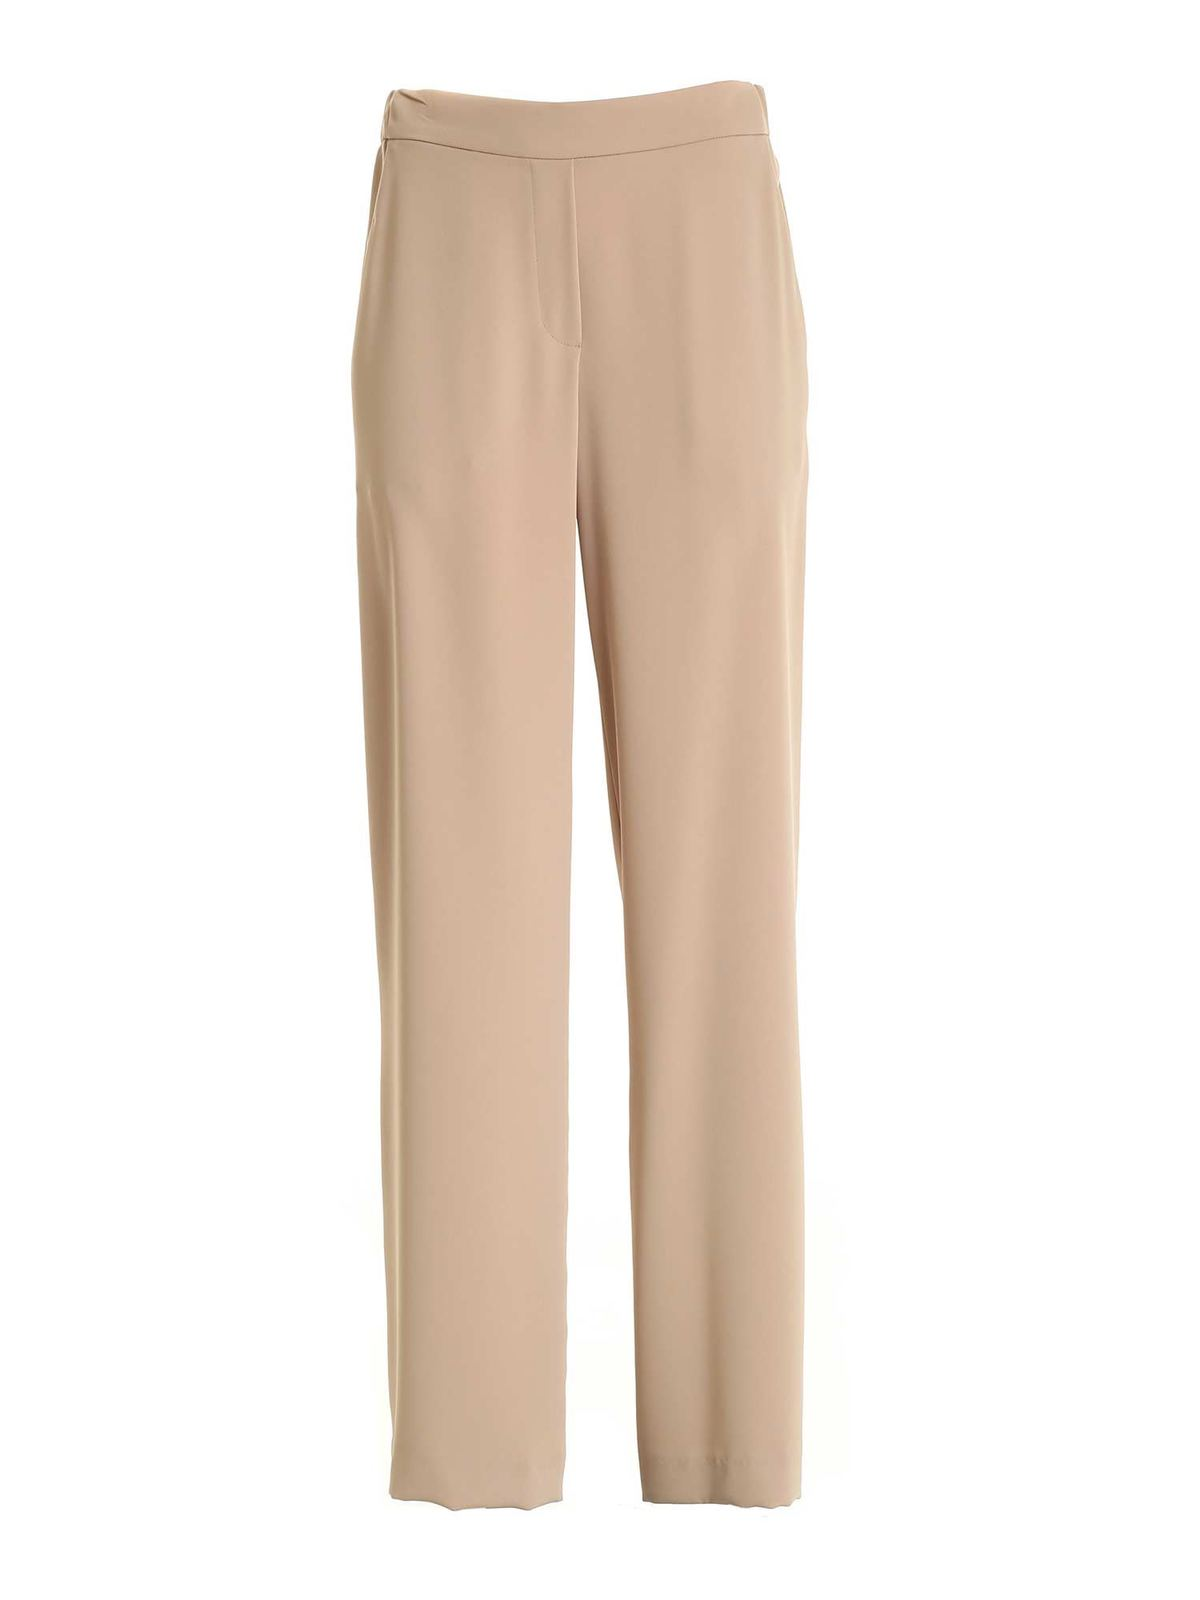 P.a.r.o.s.h. LOOSE FIT CADY PANTS IN BEIGE